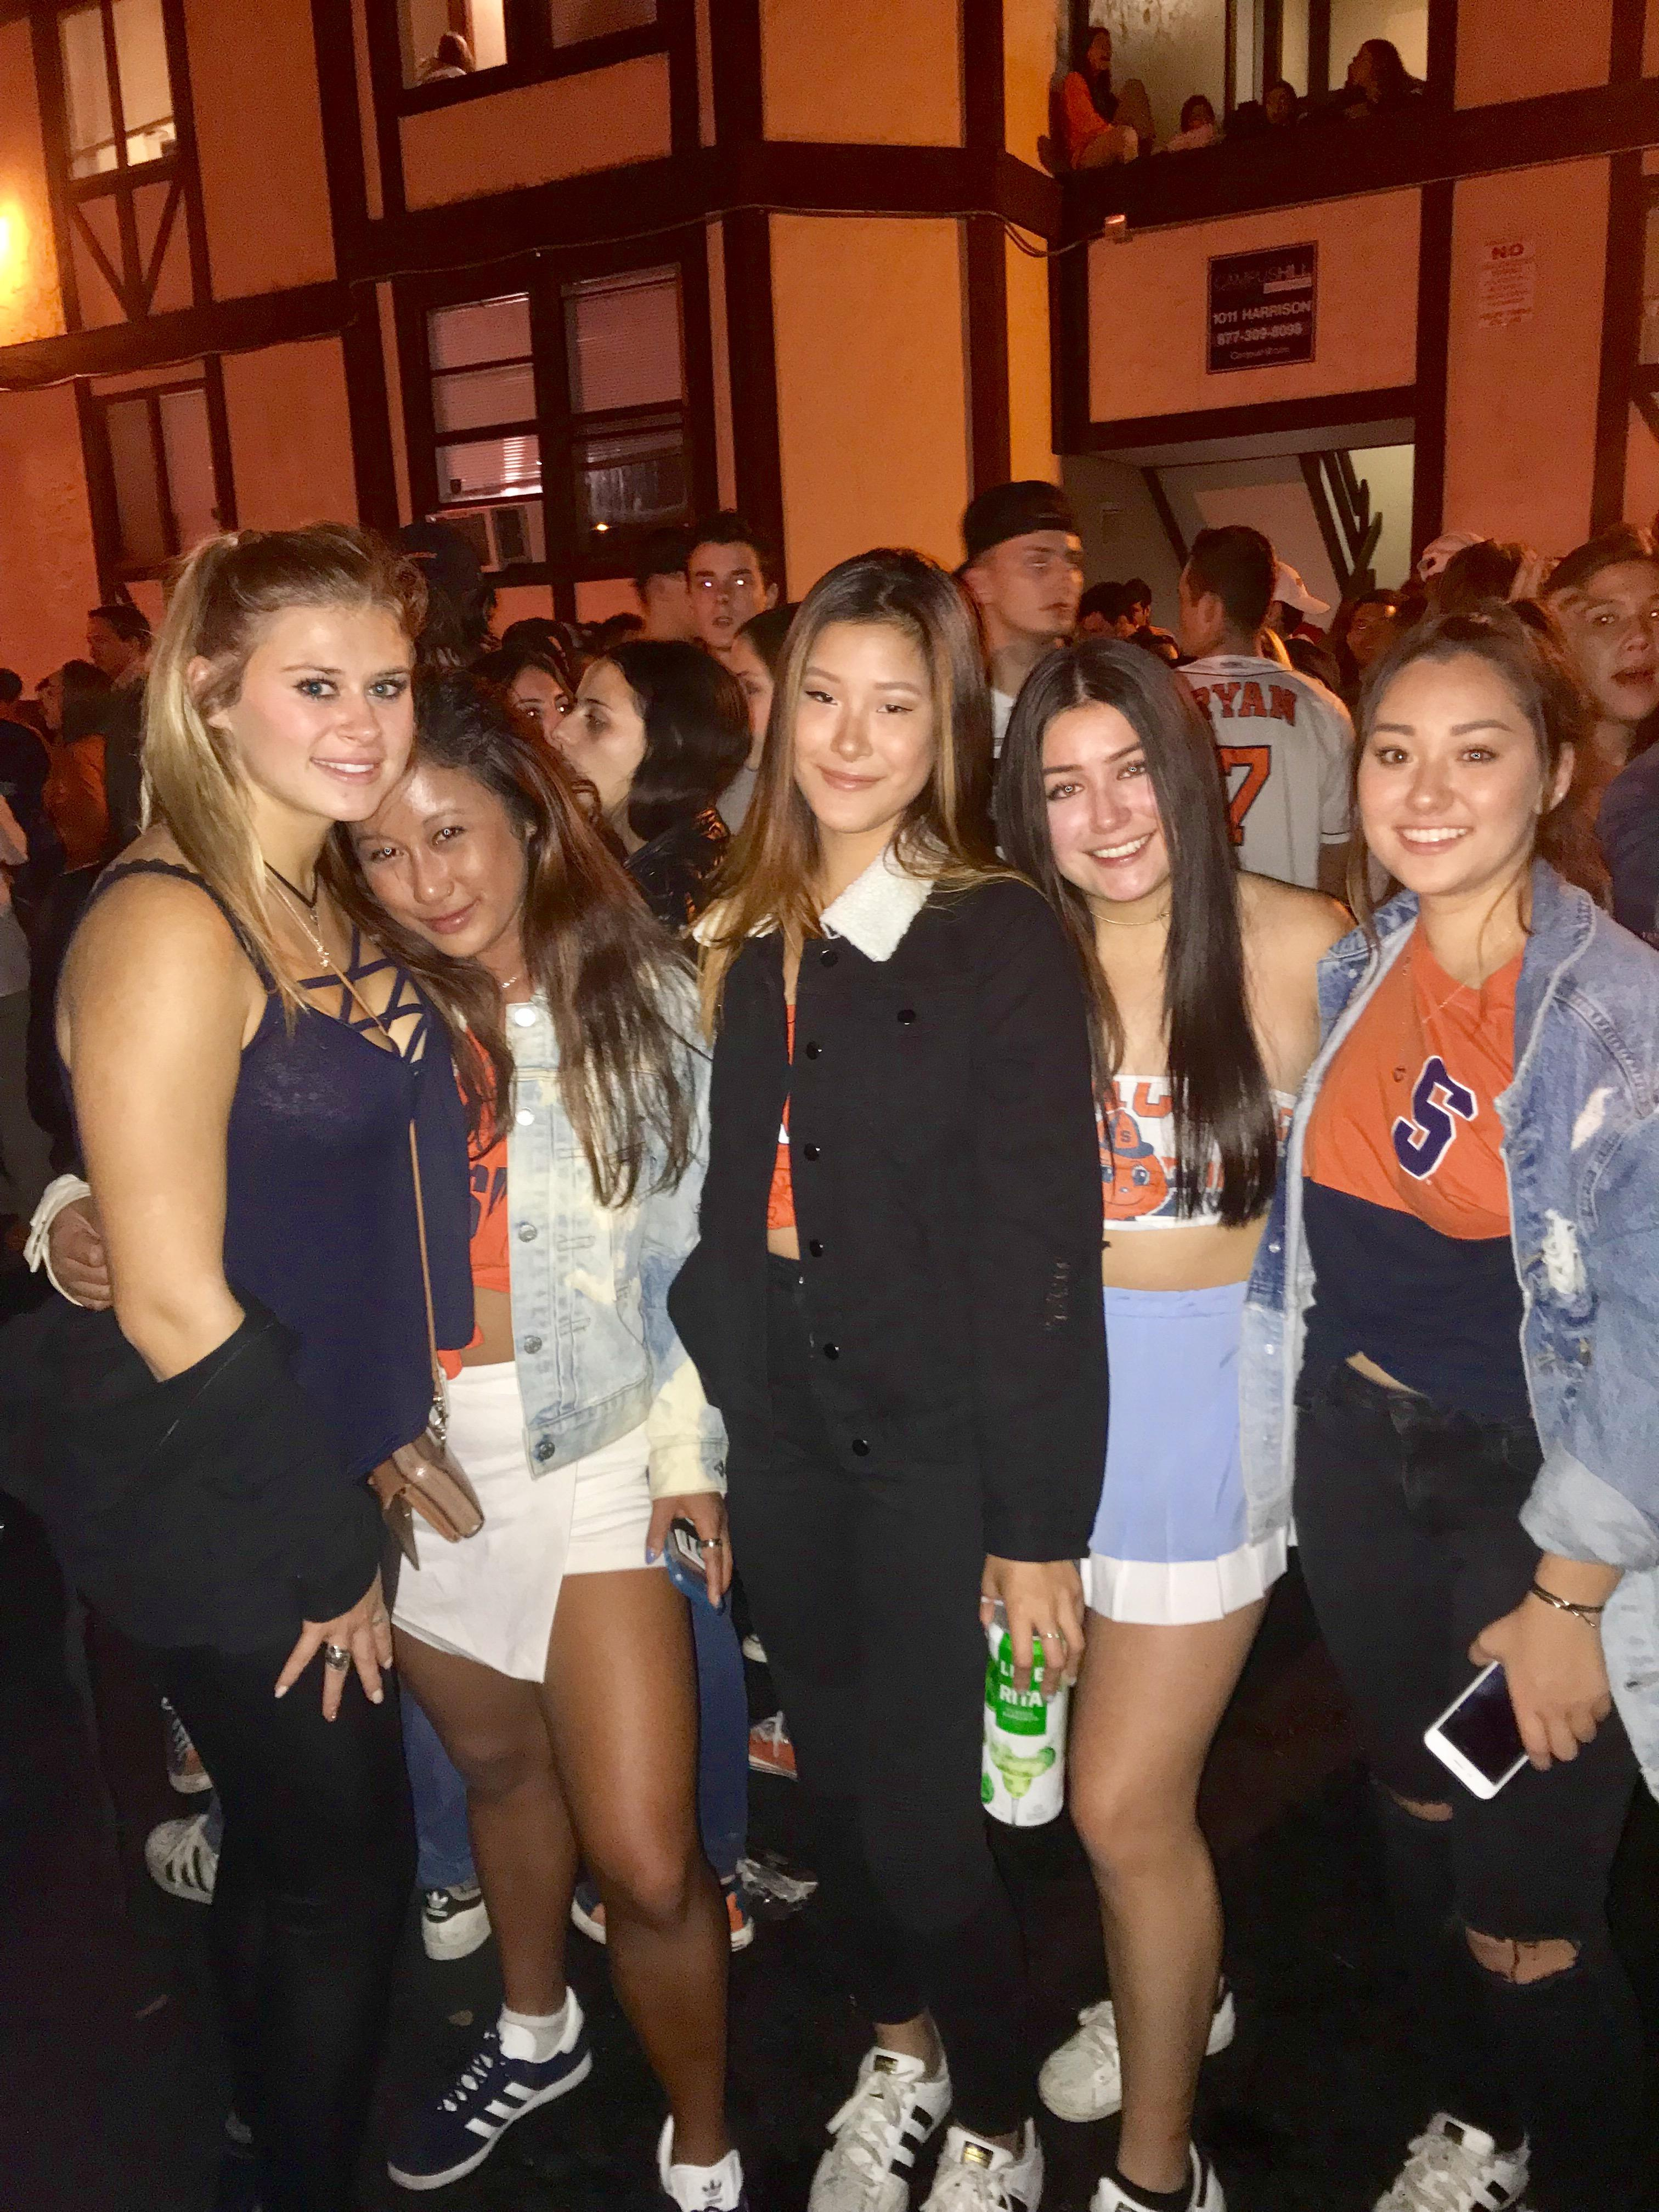 Pictured: Markell Reid, Monica Meas, Selina Sristienvong, Jisselle Garcia and Natalie Johnson